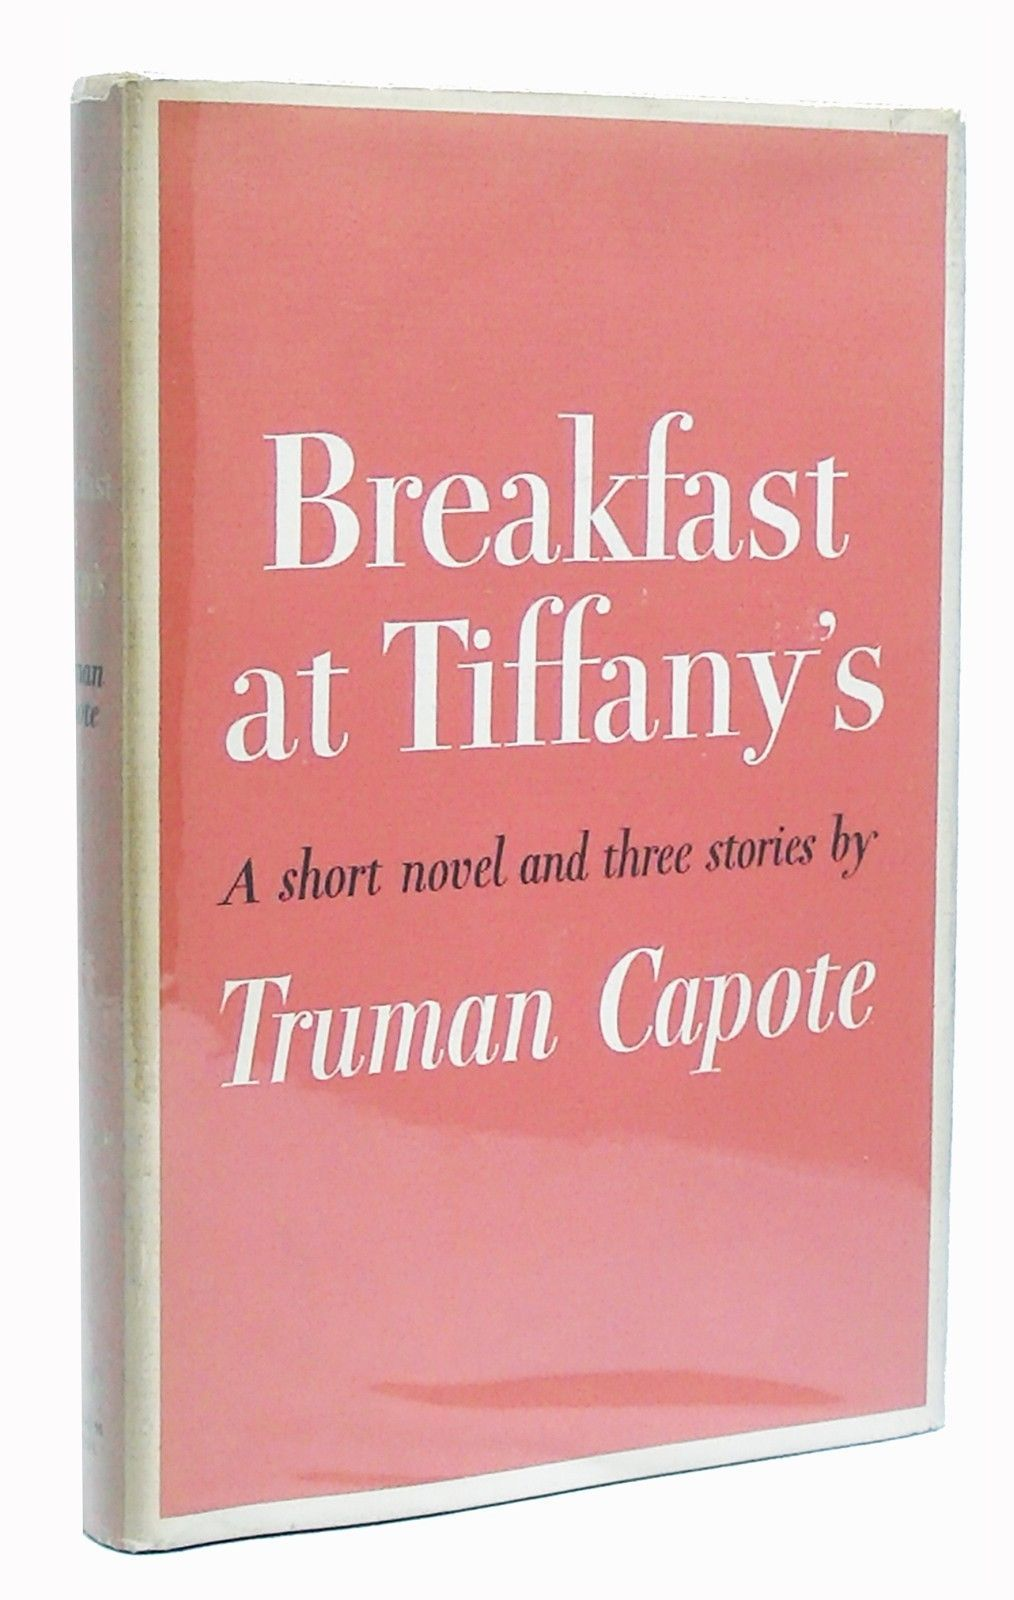 an analysis of the novel breakfast at tiffanys by truman capote Dive deep into truman capote's breakfast at tiffany's with extended analysis, commentary, and discussion structurally, the novel is told in first-person past tense, with the narrator, a writer, reminiscing about his friendship with holly golightly.